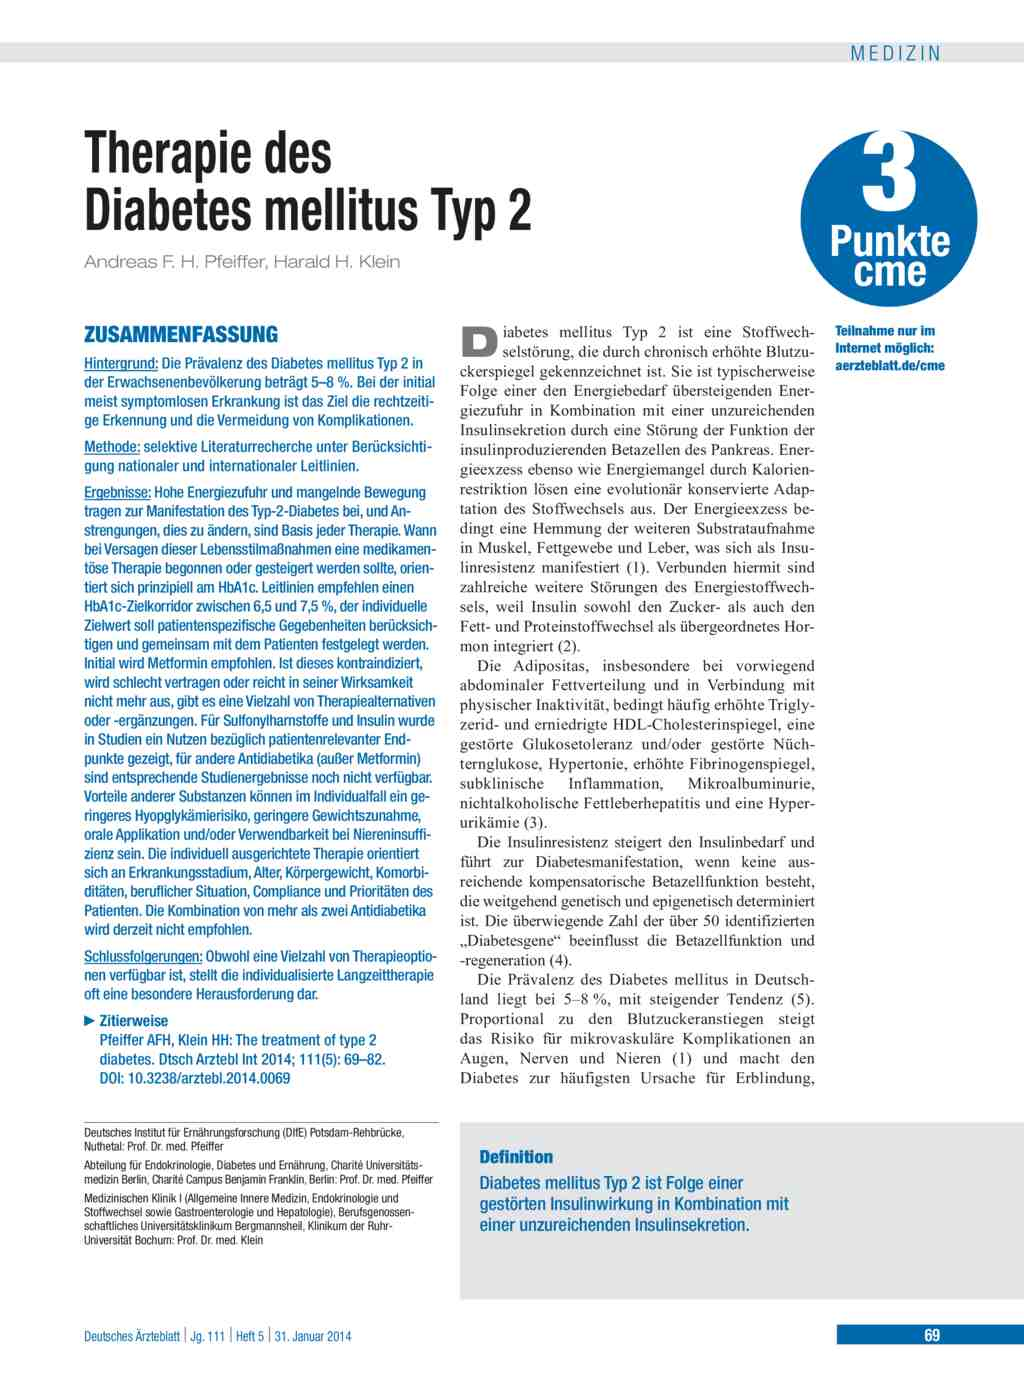 Therapie des Diabetes mellitus Typ 2